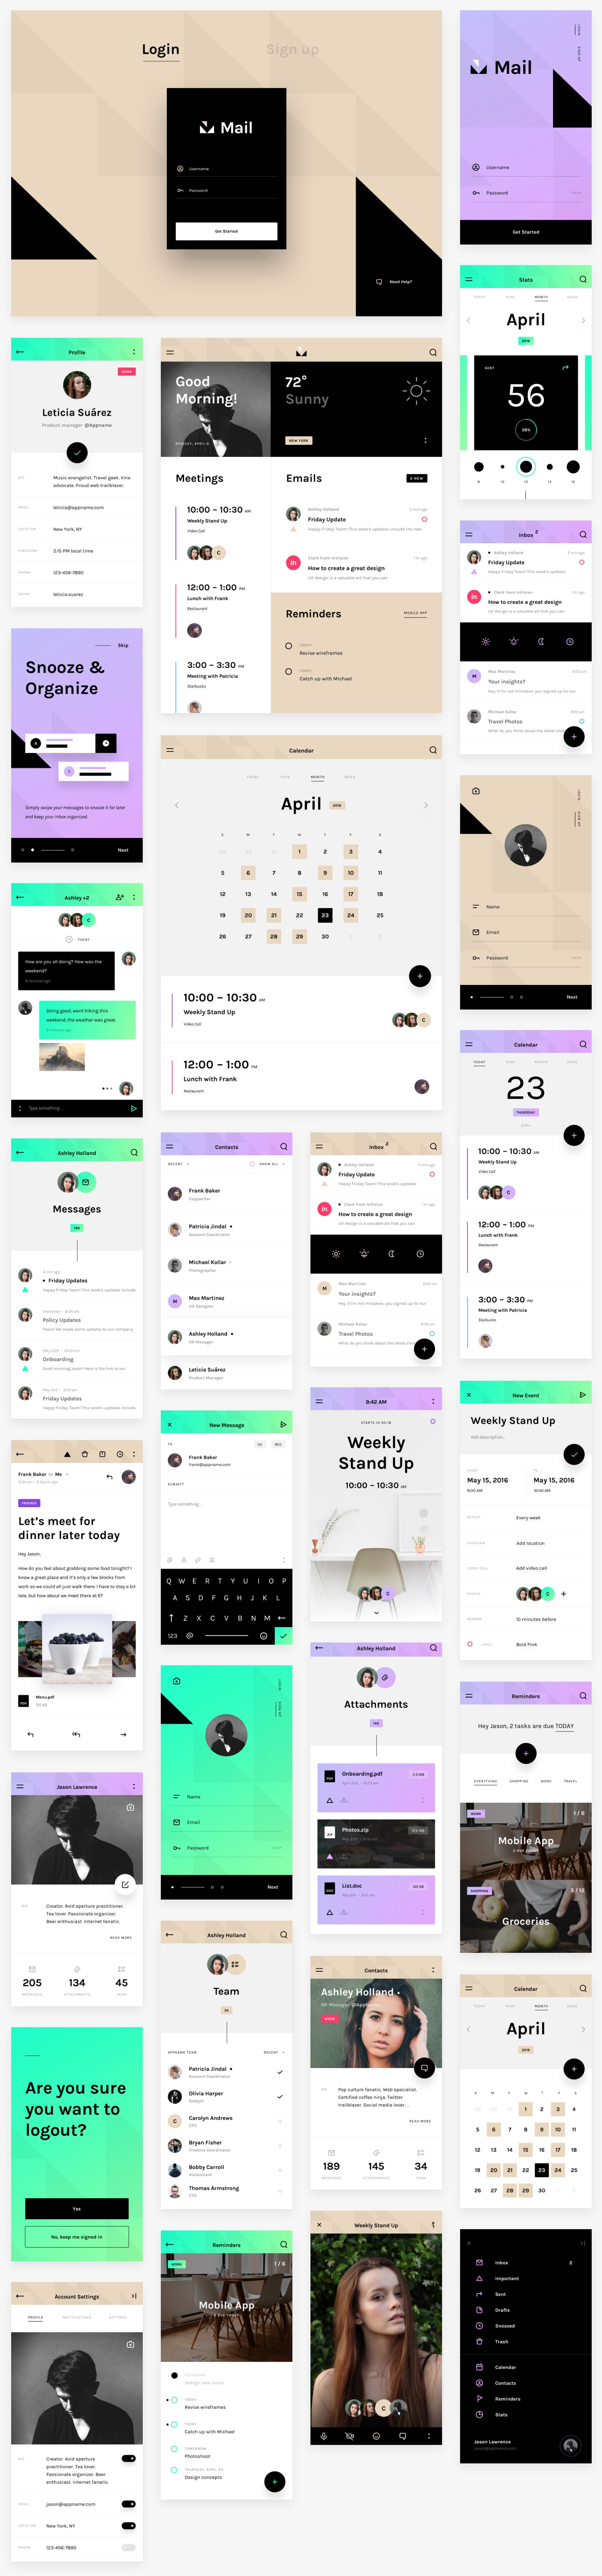 Mail - A free cross-platform UI kit - Tailor-made for desktop, mobile, tablet, and smartwatch formats, so your design looks its best on any device.